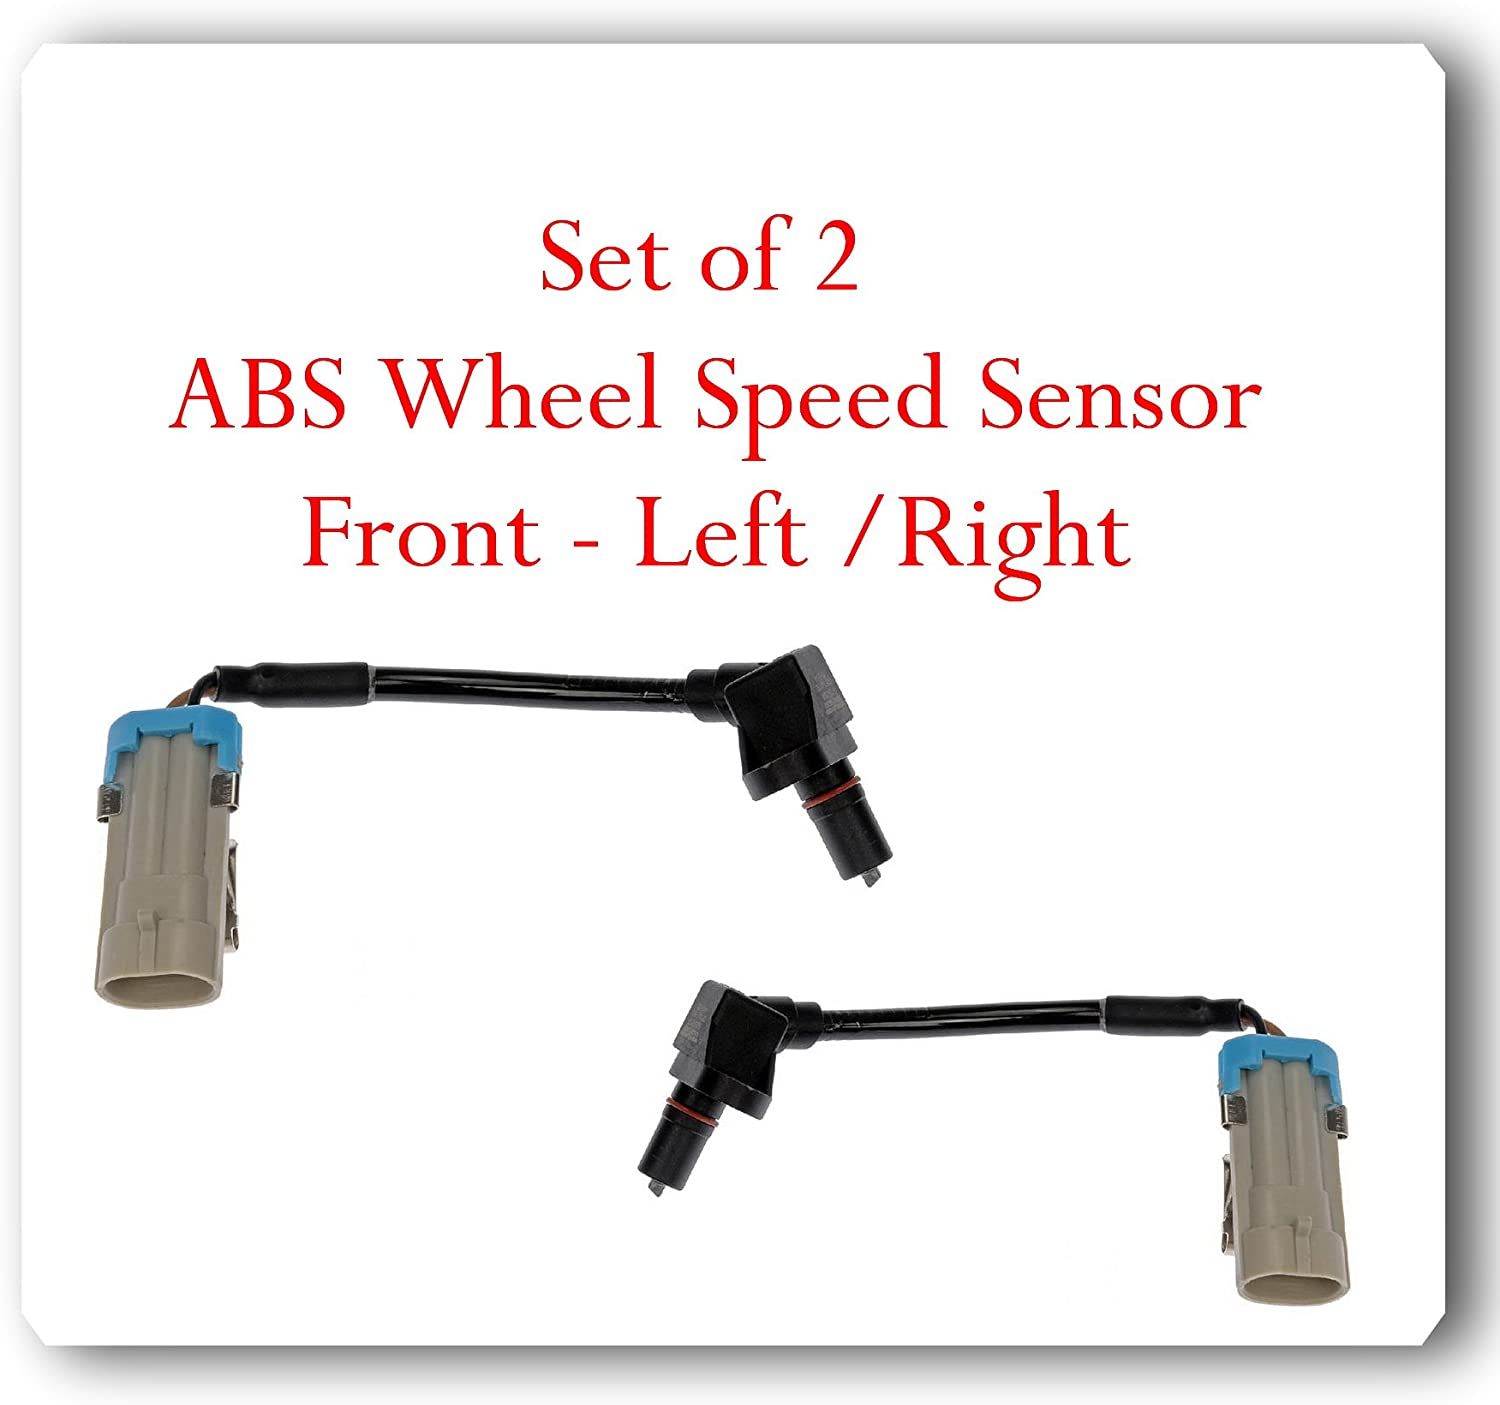 2006 Pontiac Torrent ABS Wheel Speed Sensor Front Left and Right ALS1344 For 2002-2007 Saturn Vue 2005-2006 Chevy Equinox